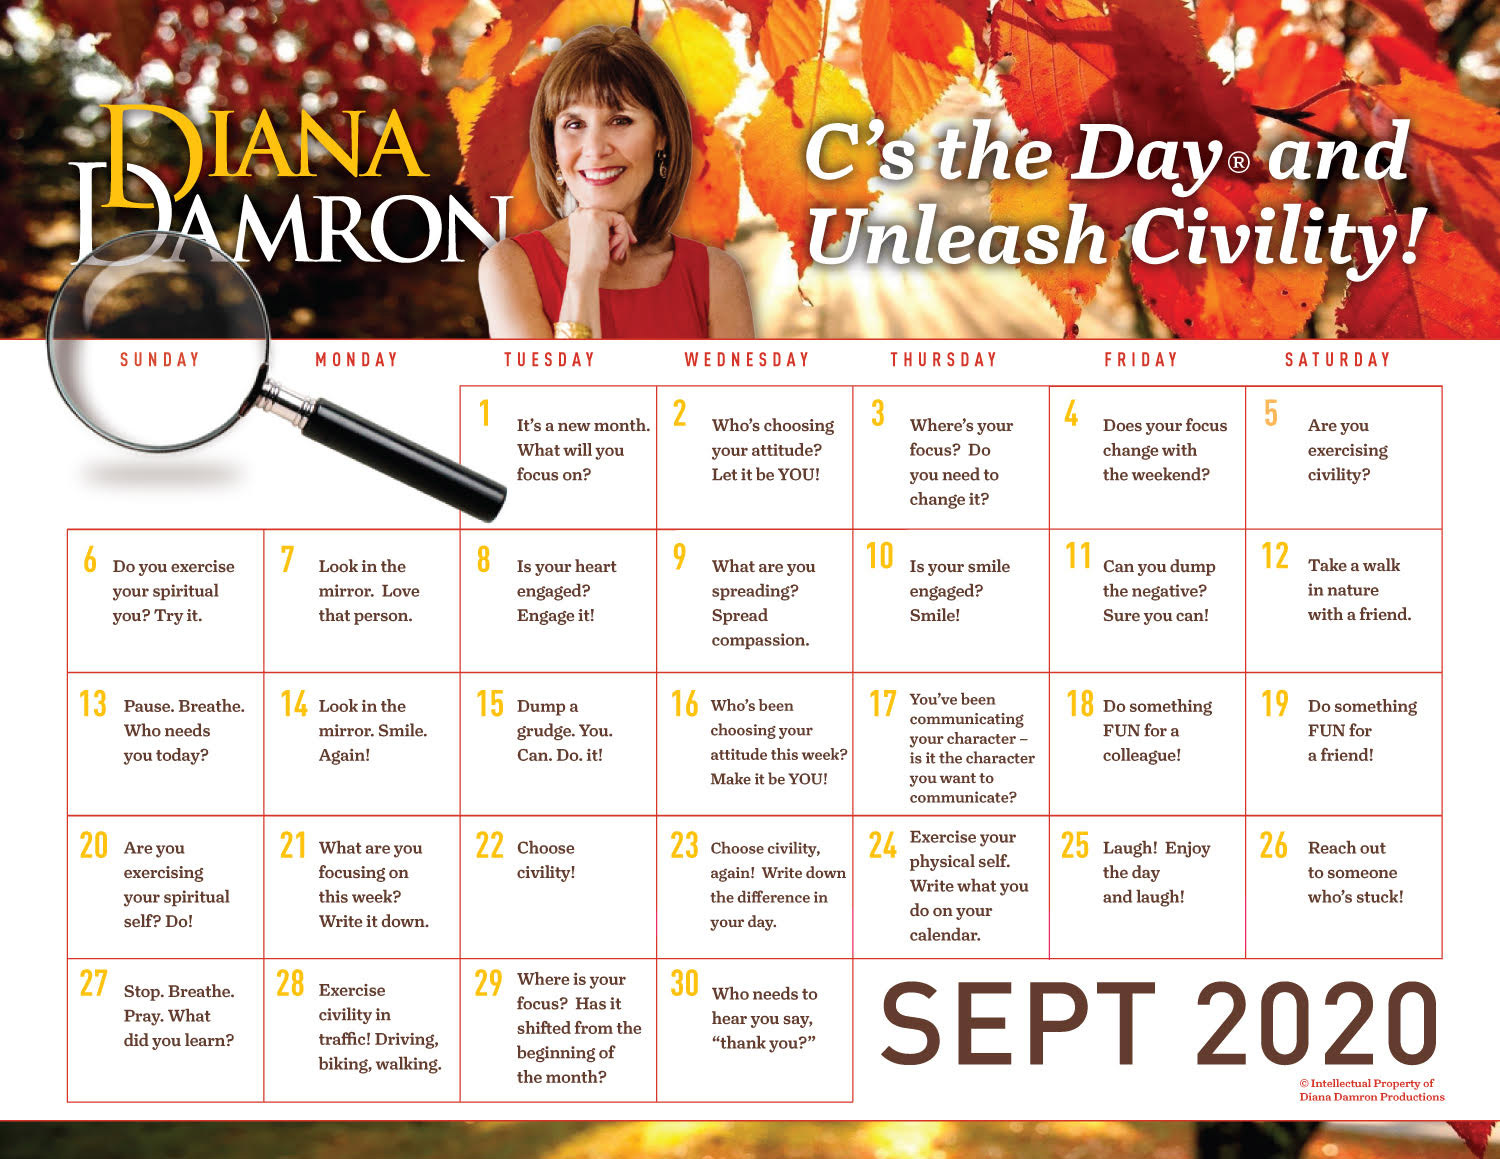 September 2020 Calendar by Diana Damron